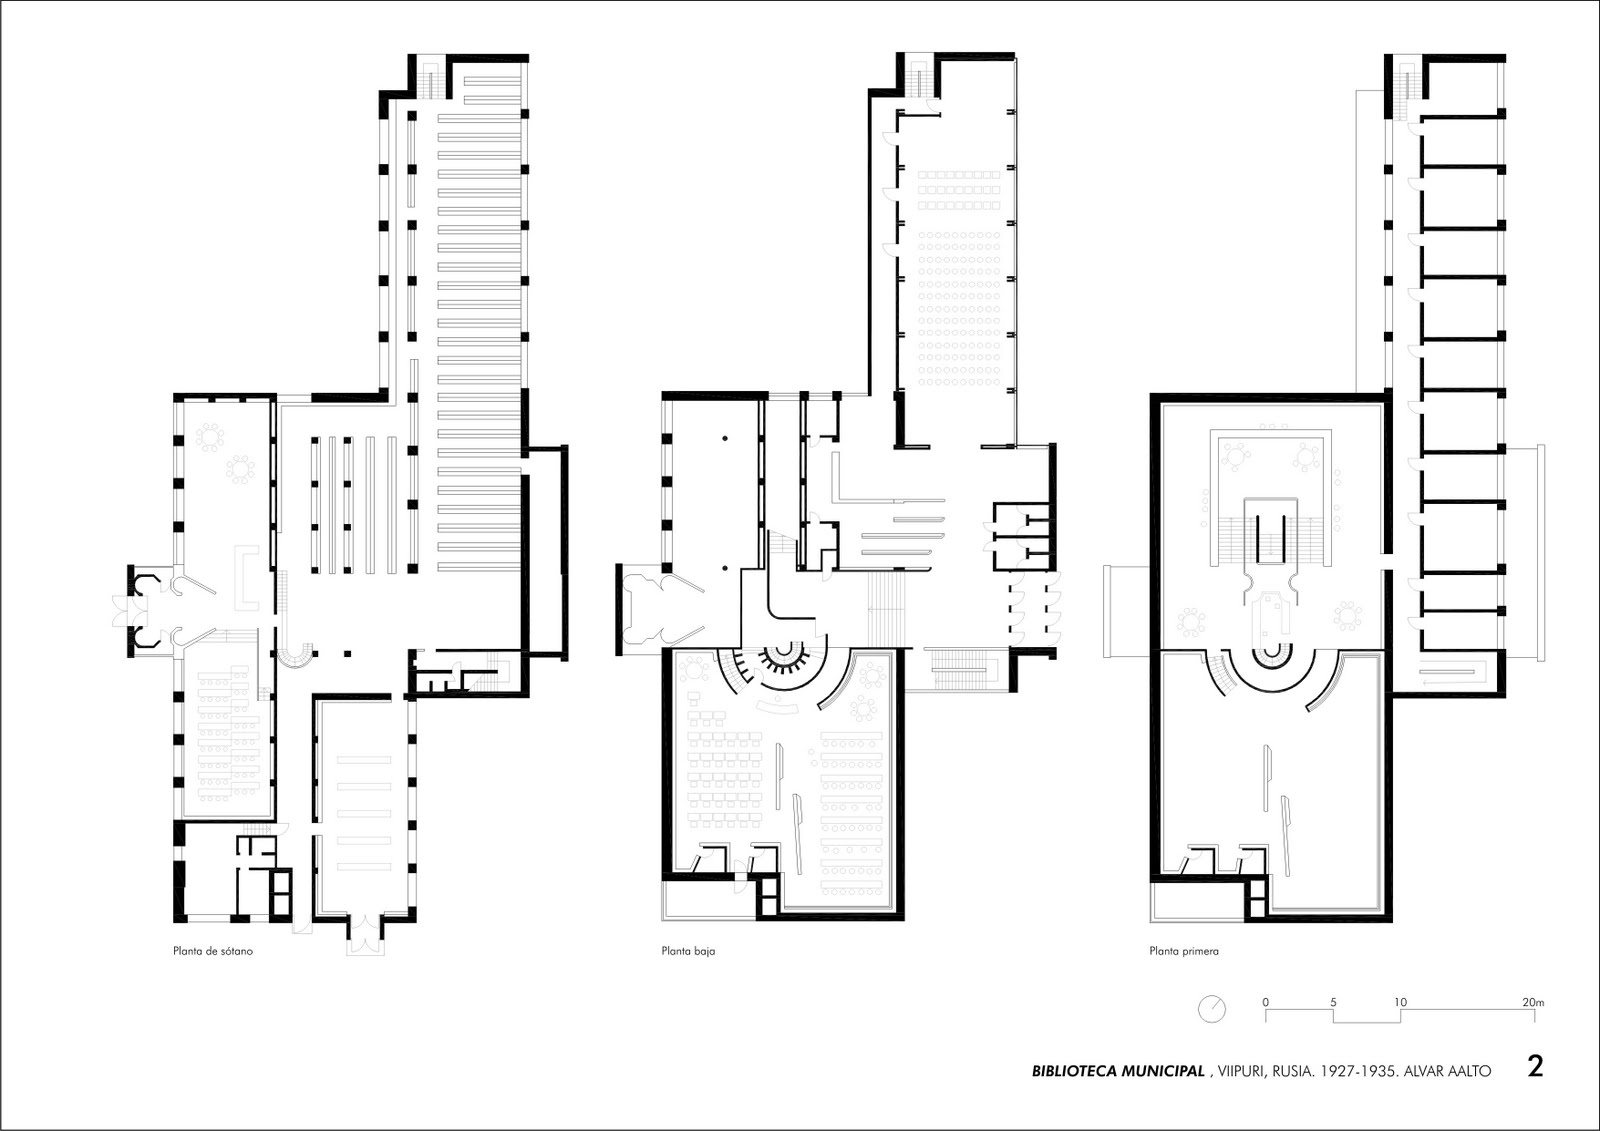 Royalty Free Stock Image Modern Interior Design Freehand Drawing Image14052396 as well Floor Plan Dl 6801 additionally 9eef59e176be1a7d 3 Bedroom House Plan Designs Best 3 Bedroom House Plans moreover Stock Illustration Outdoor Leisure Recreation Icons Icon Set Image56421495 moreover 552da20d98c1f918 French Country House Floor Plan Authentic French Farmhouse Kitchens. on luxury house plans with photos